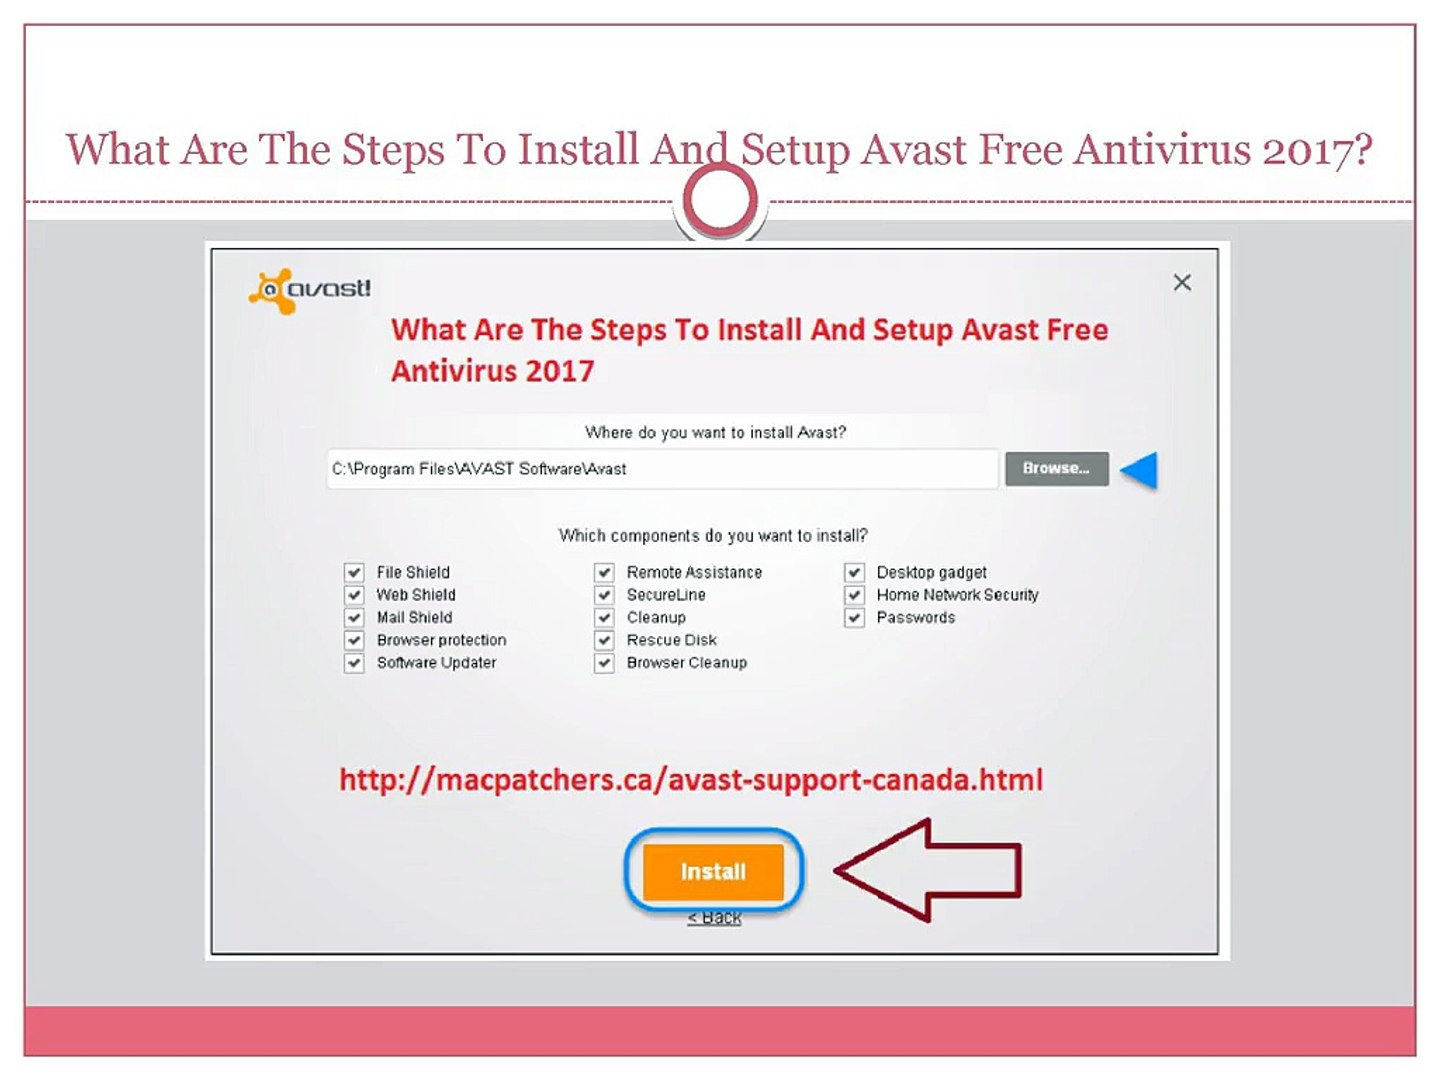 What Are The Steps To Install And Setup Avast Free Antivirus 2017